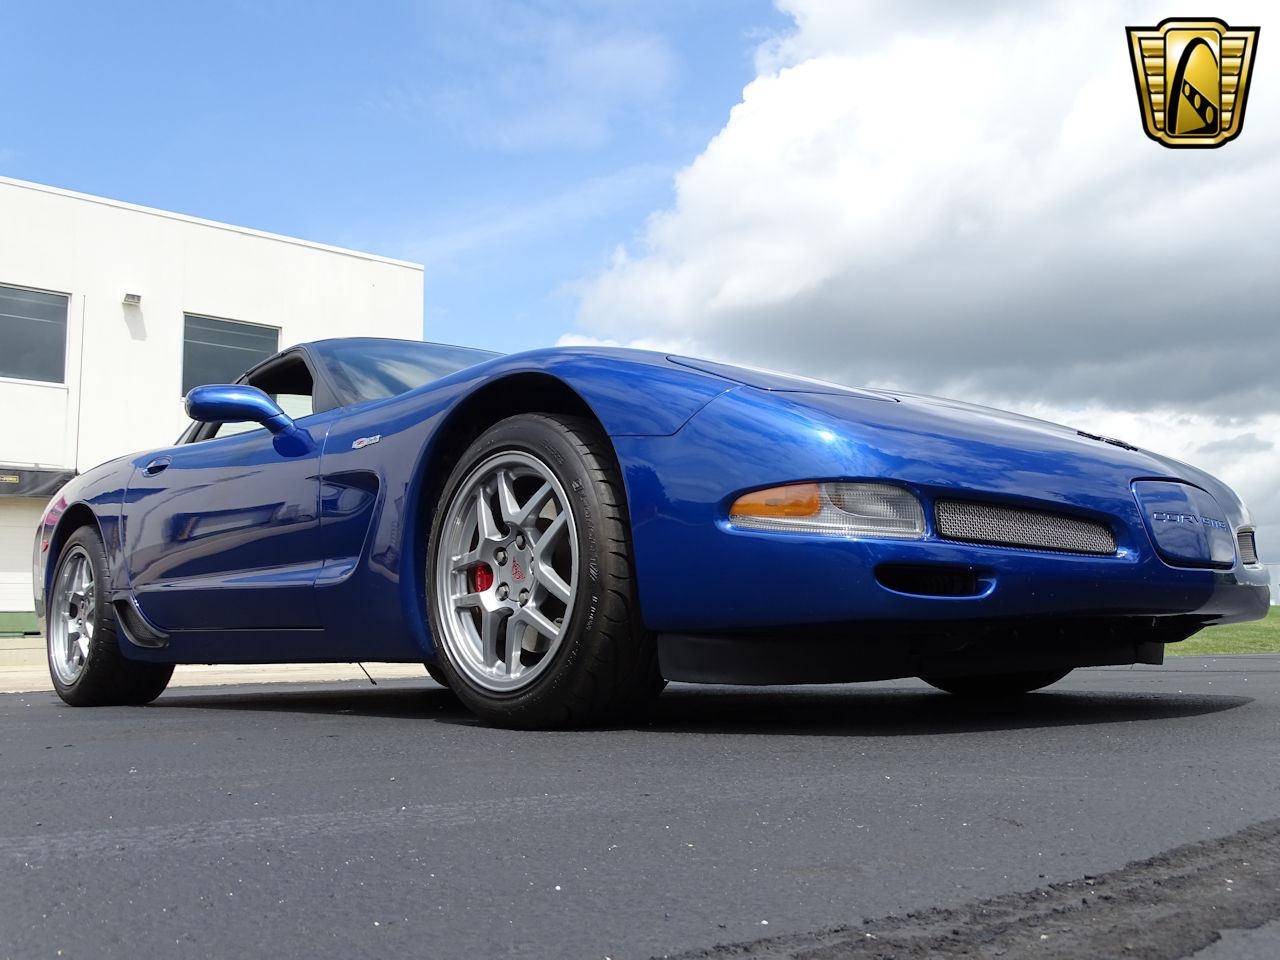 Large Picture of 2002 Chevrolet Corvette located in Indianapolis Indiana - $29,595.00 Offered by Gateway Classic Cars - Indianapolis - LCNV